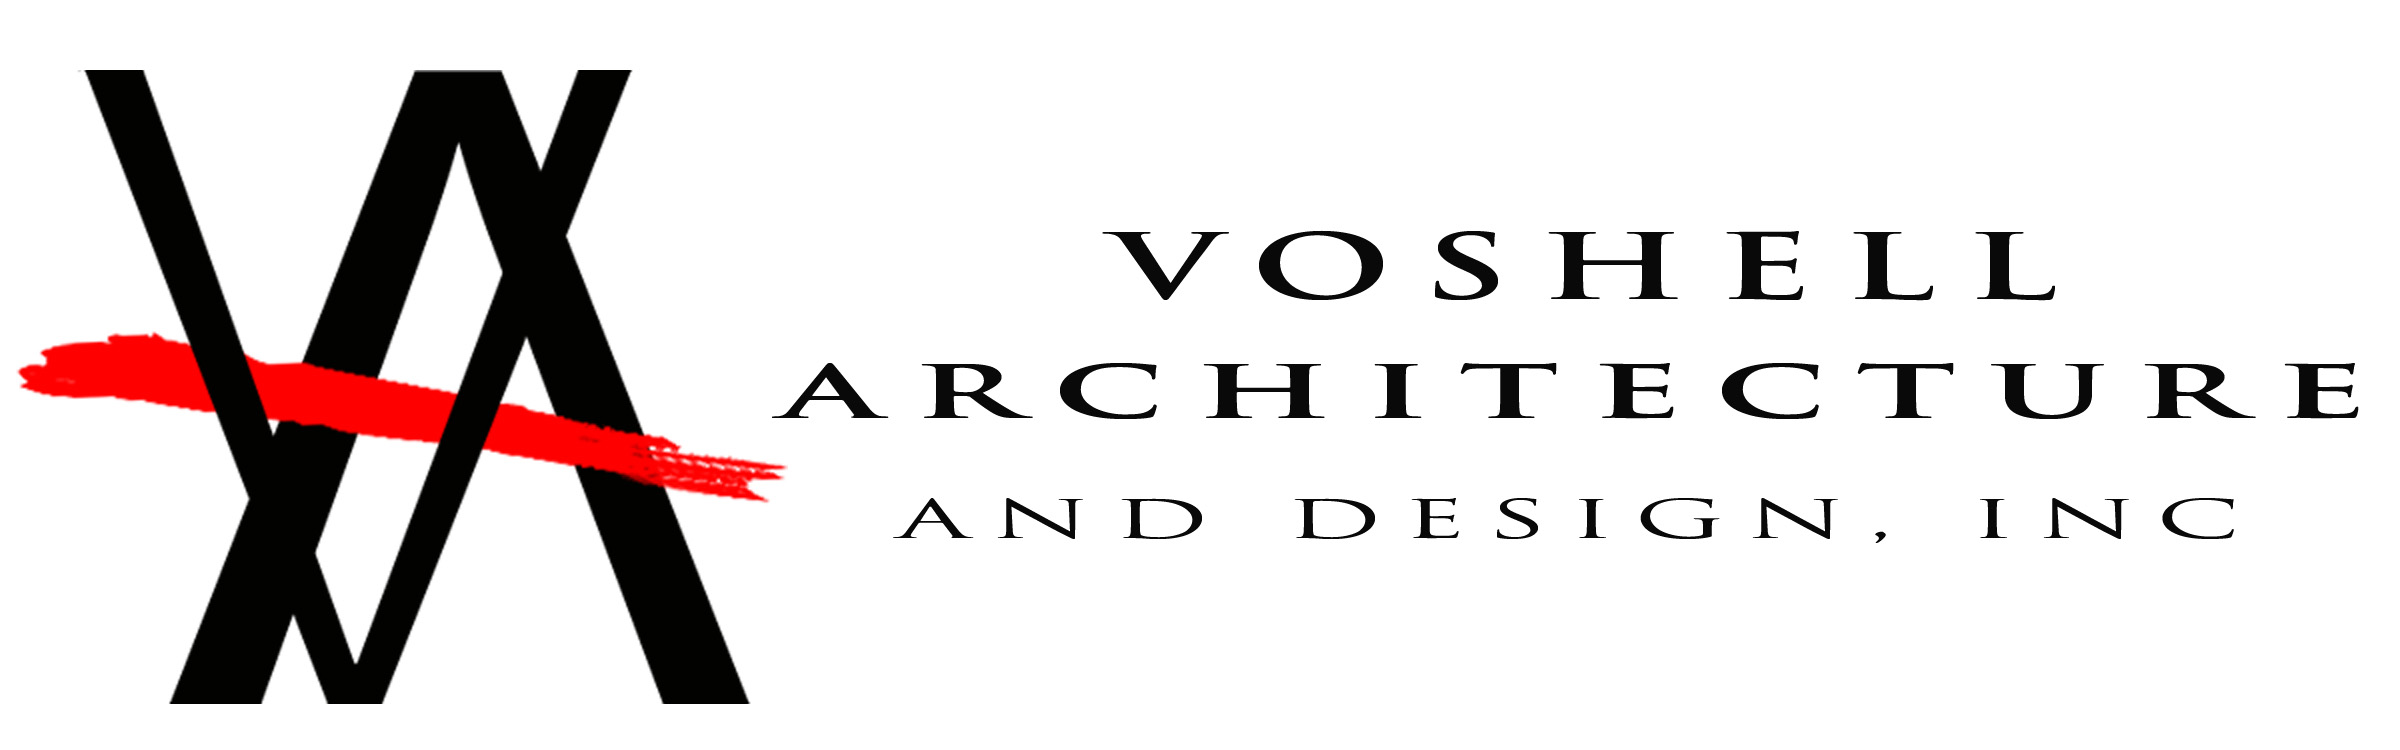 VOSHARCH Logo-No Address.jpg